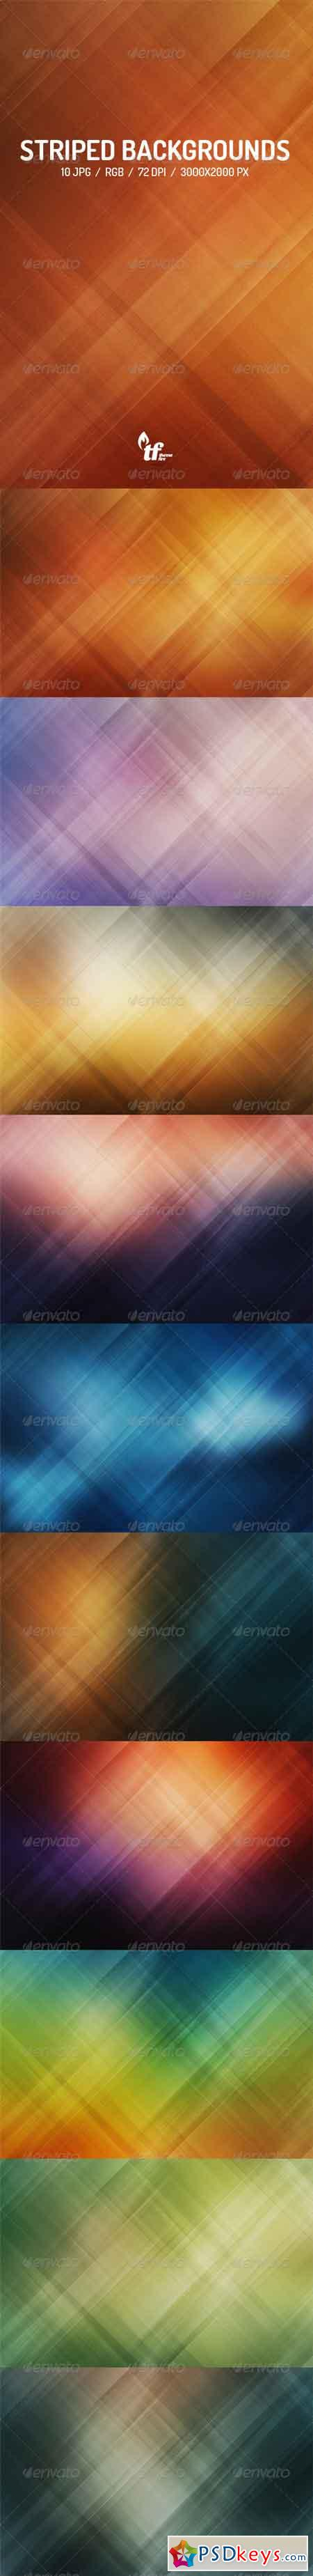 Abstract Striped Backgrounds 7748780